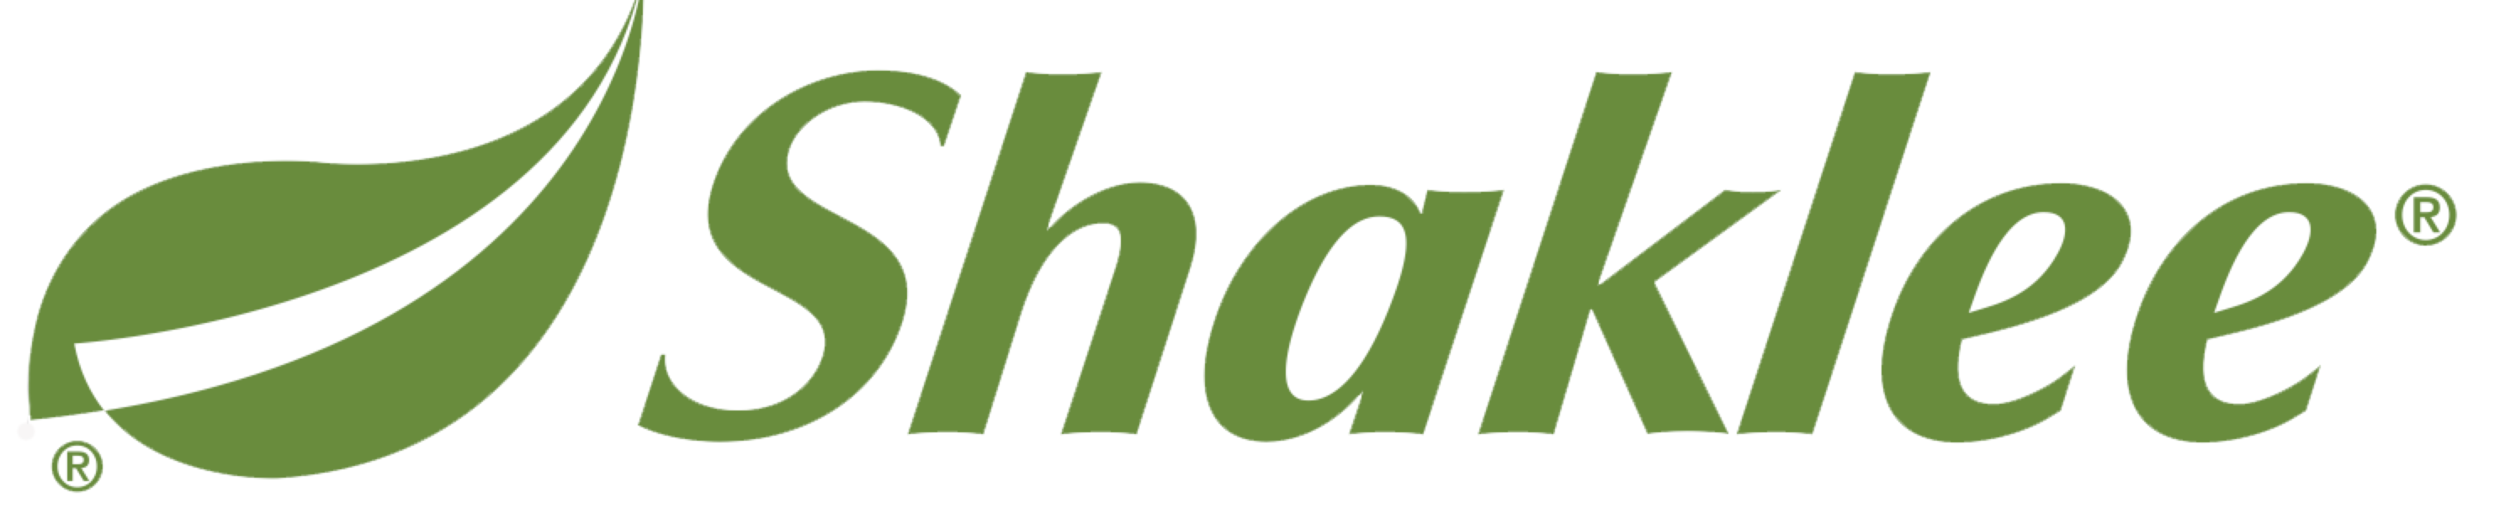 Part Shaklee Logo.png